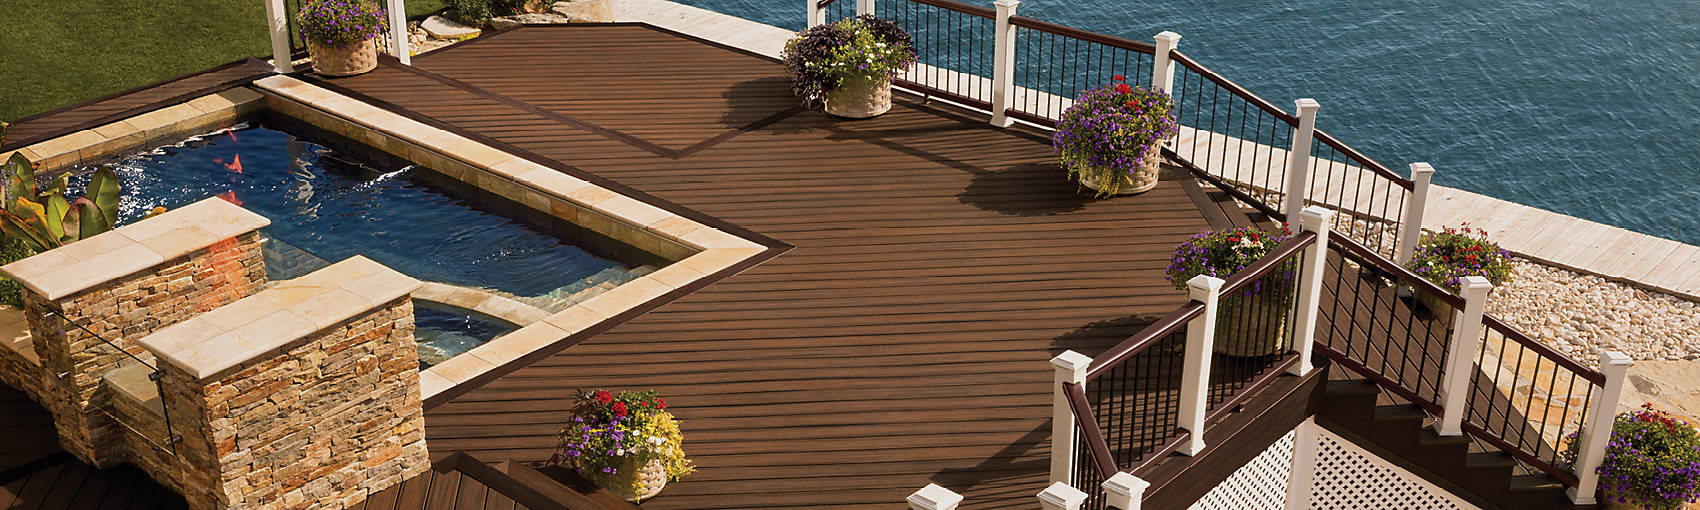 Image Result For Composite Deck Lumber Reviews